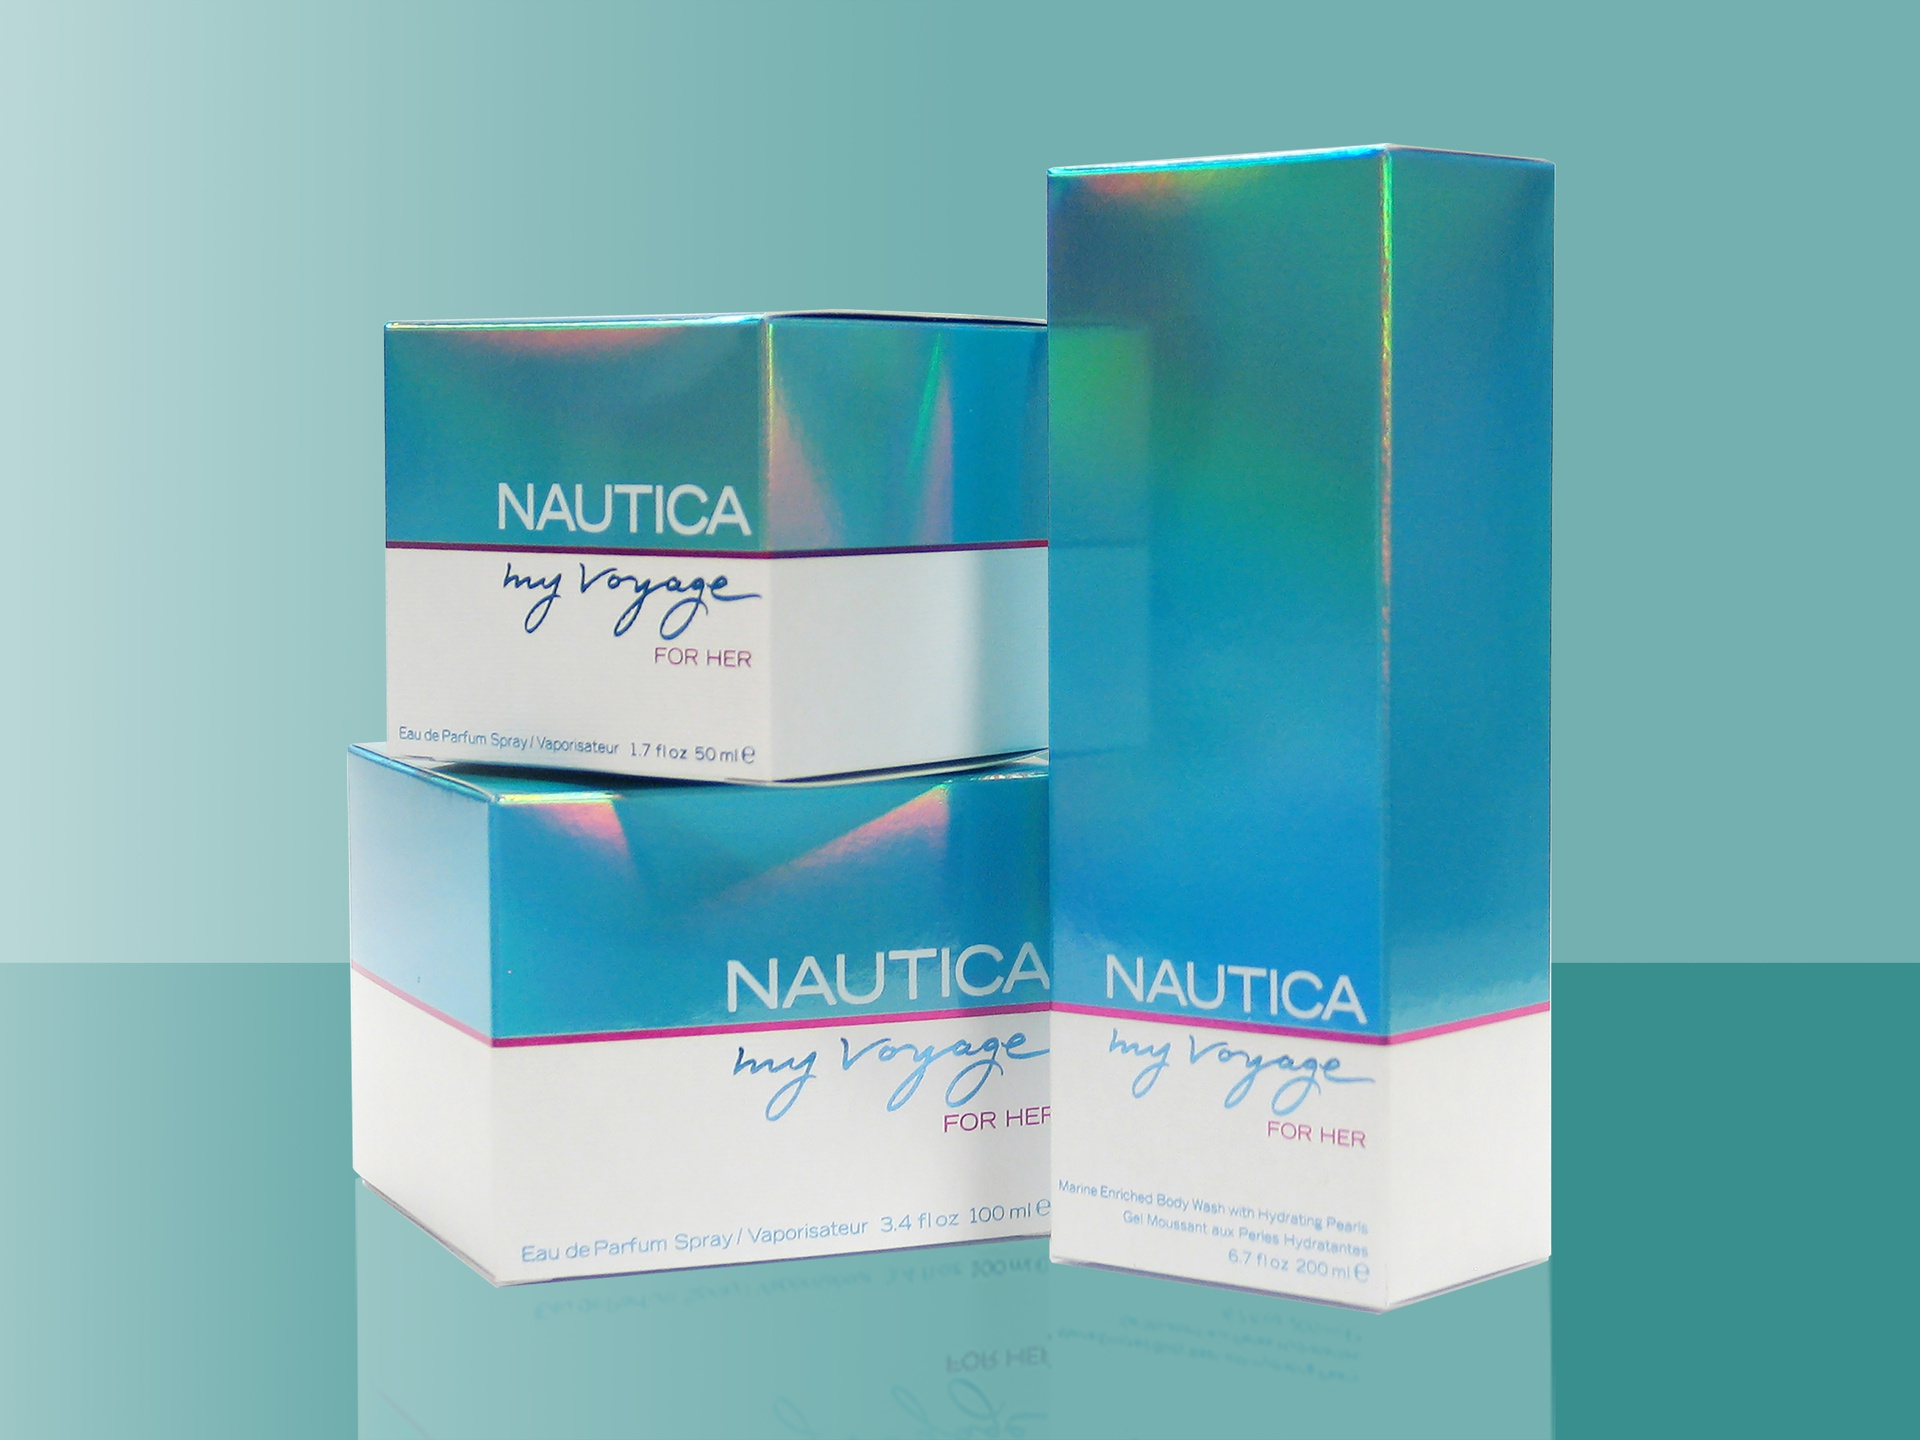 Nautica My Voyage For Her packaging